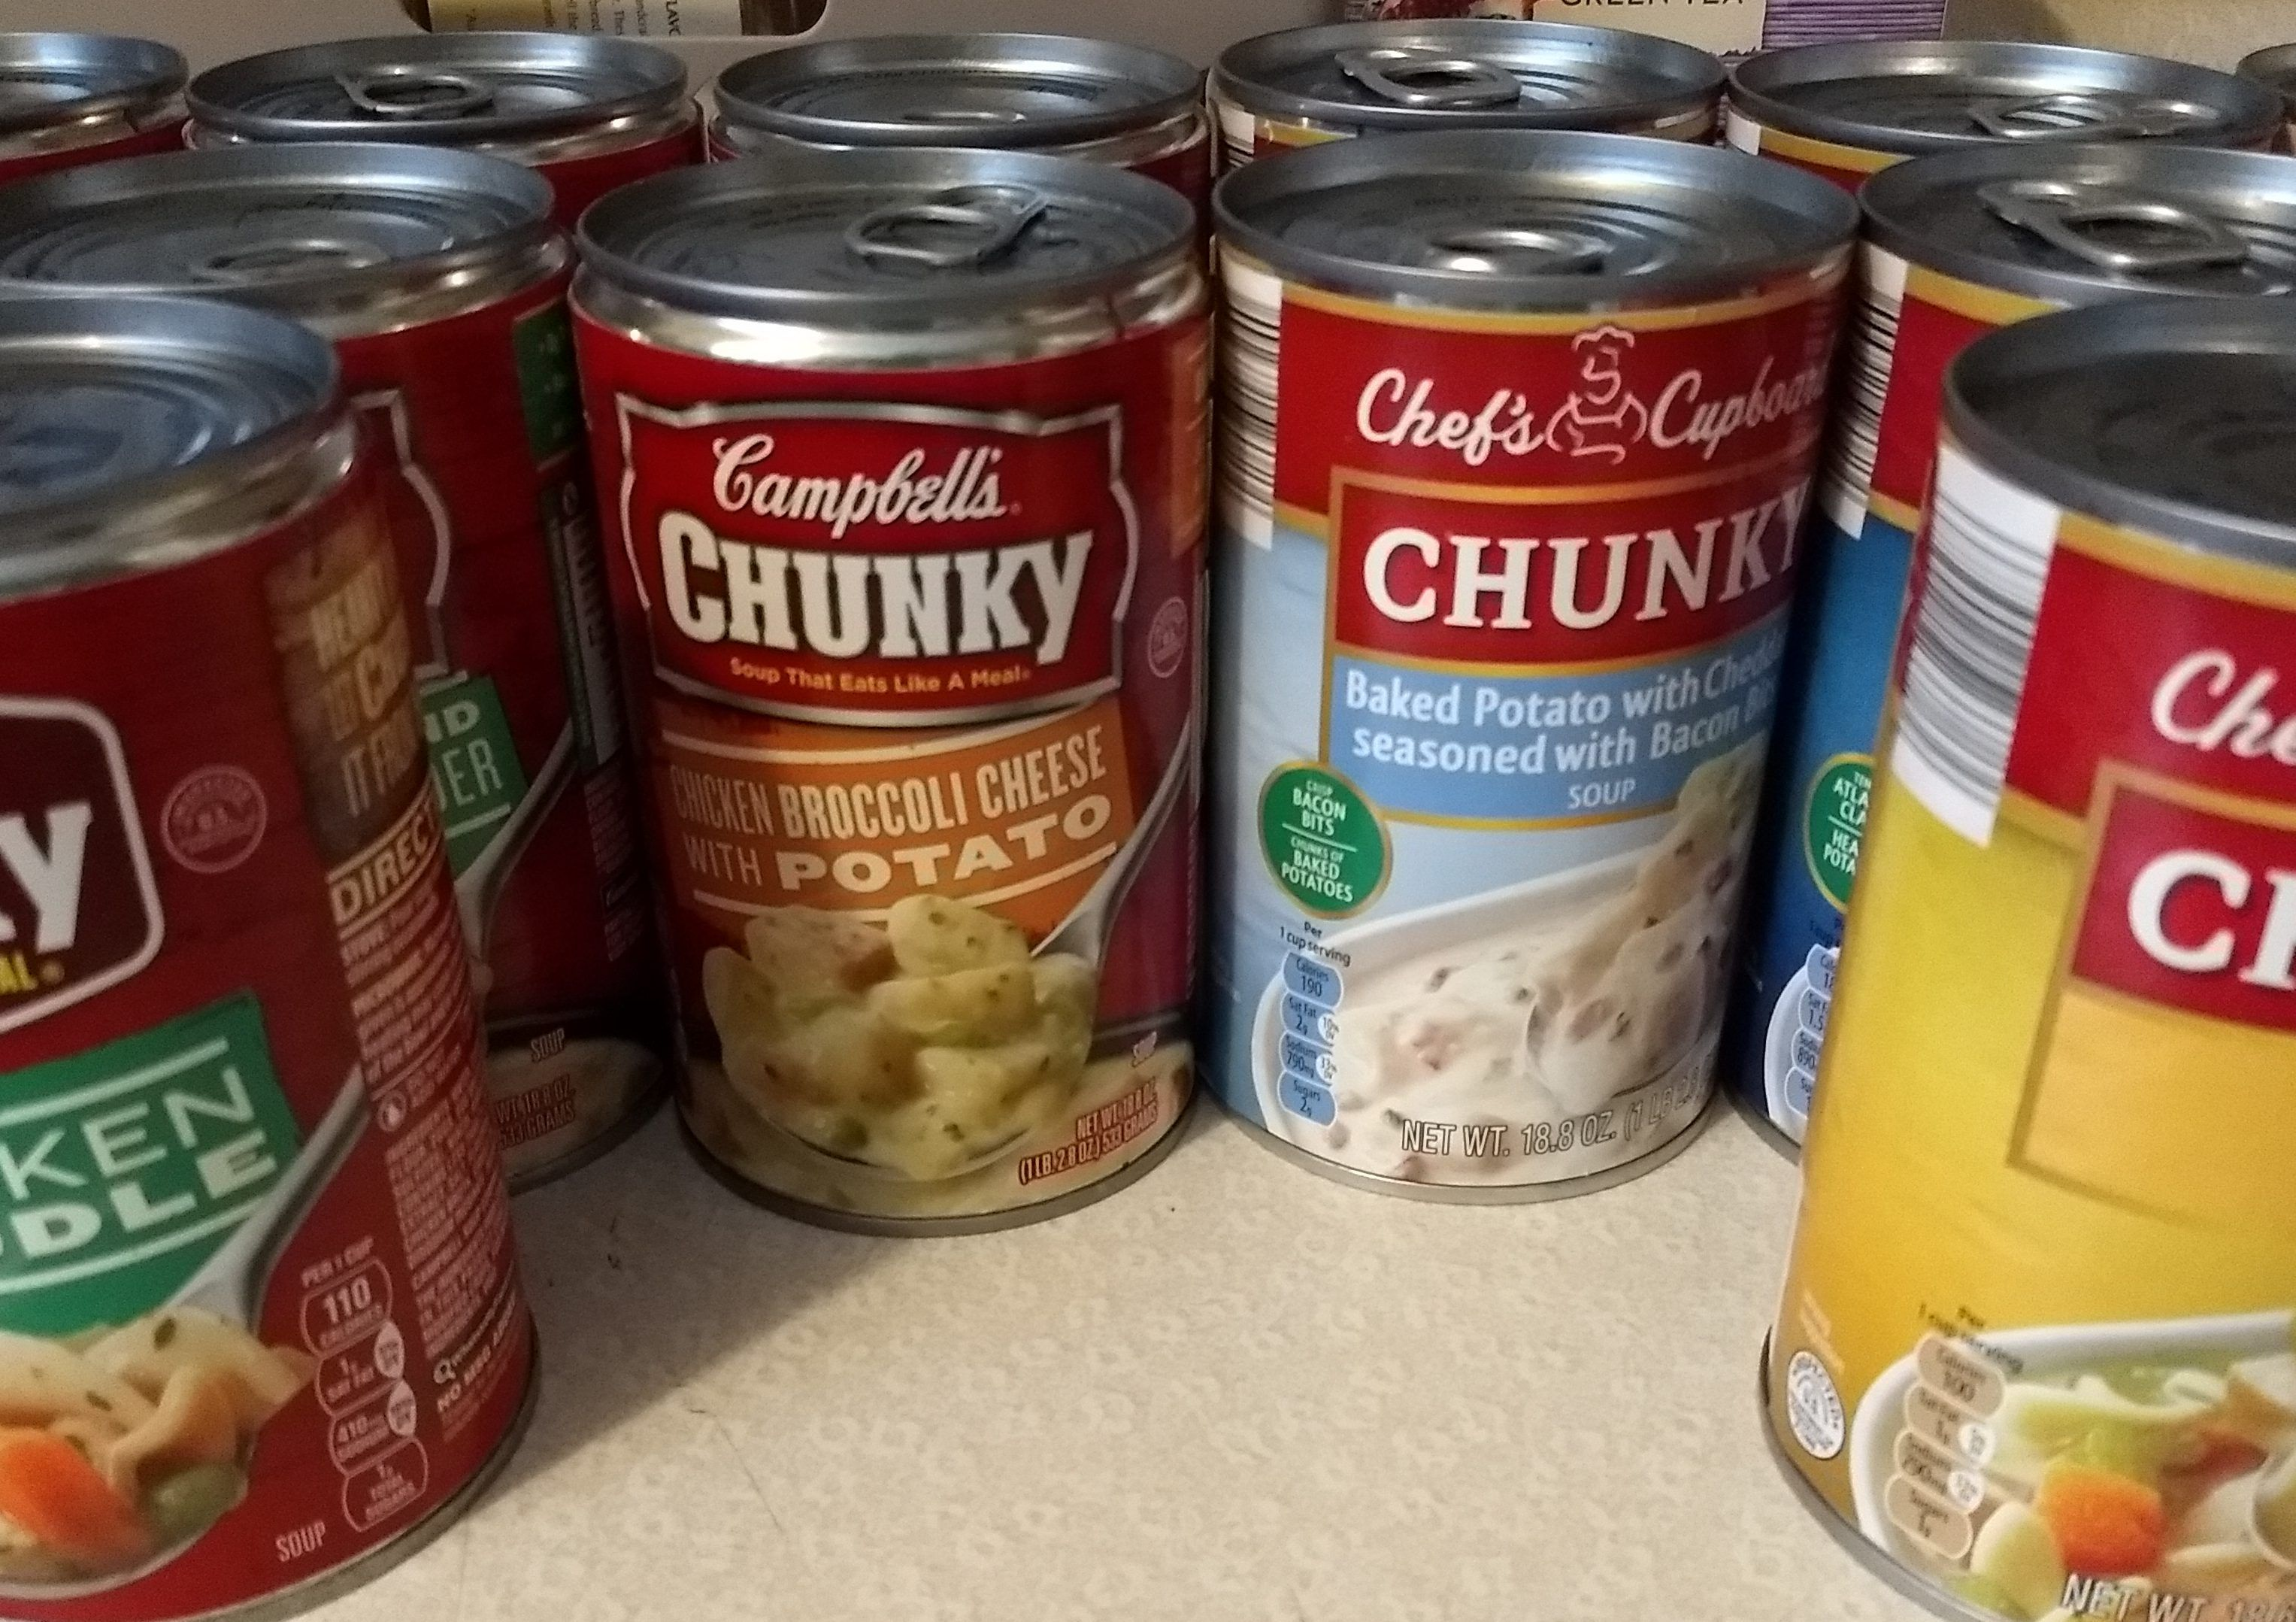 The Chunky Soup Showdown Campbell S Vs Chef S Cupboard Cold